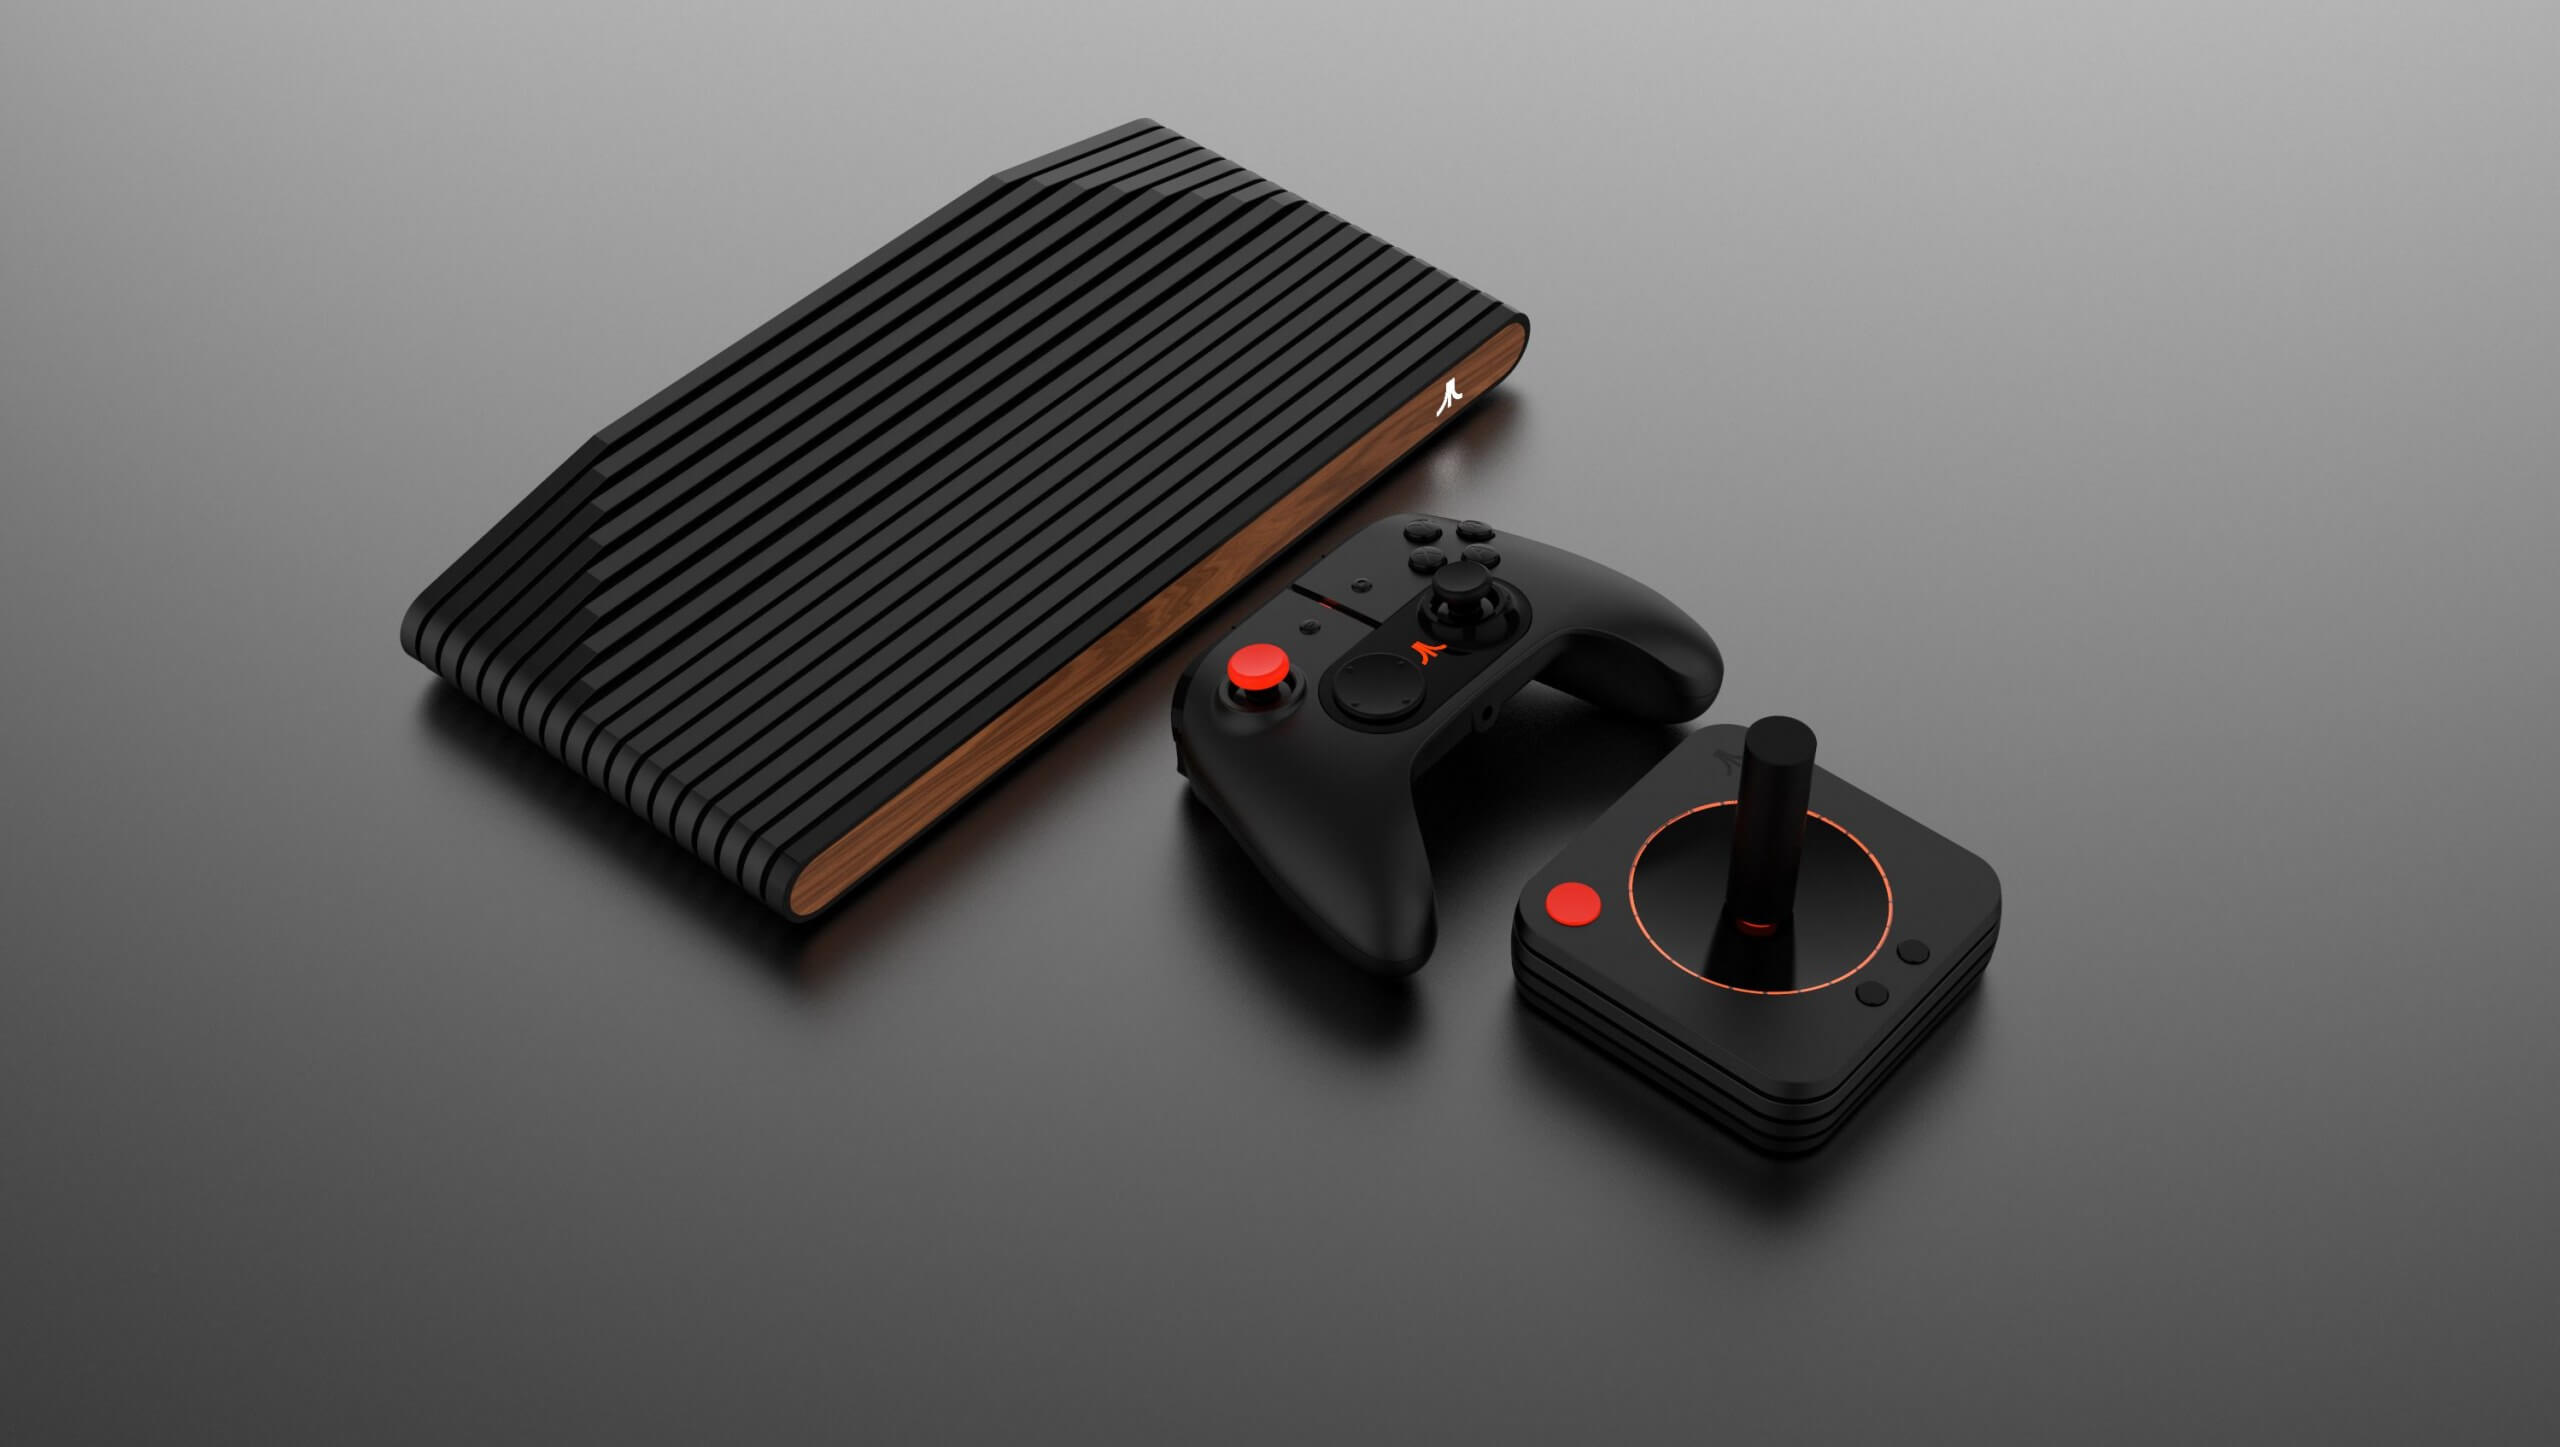 Atari's VCS controller is what you would expect, but its joystick is